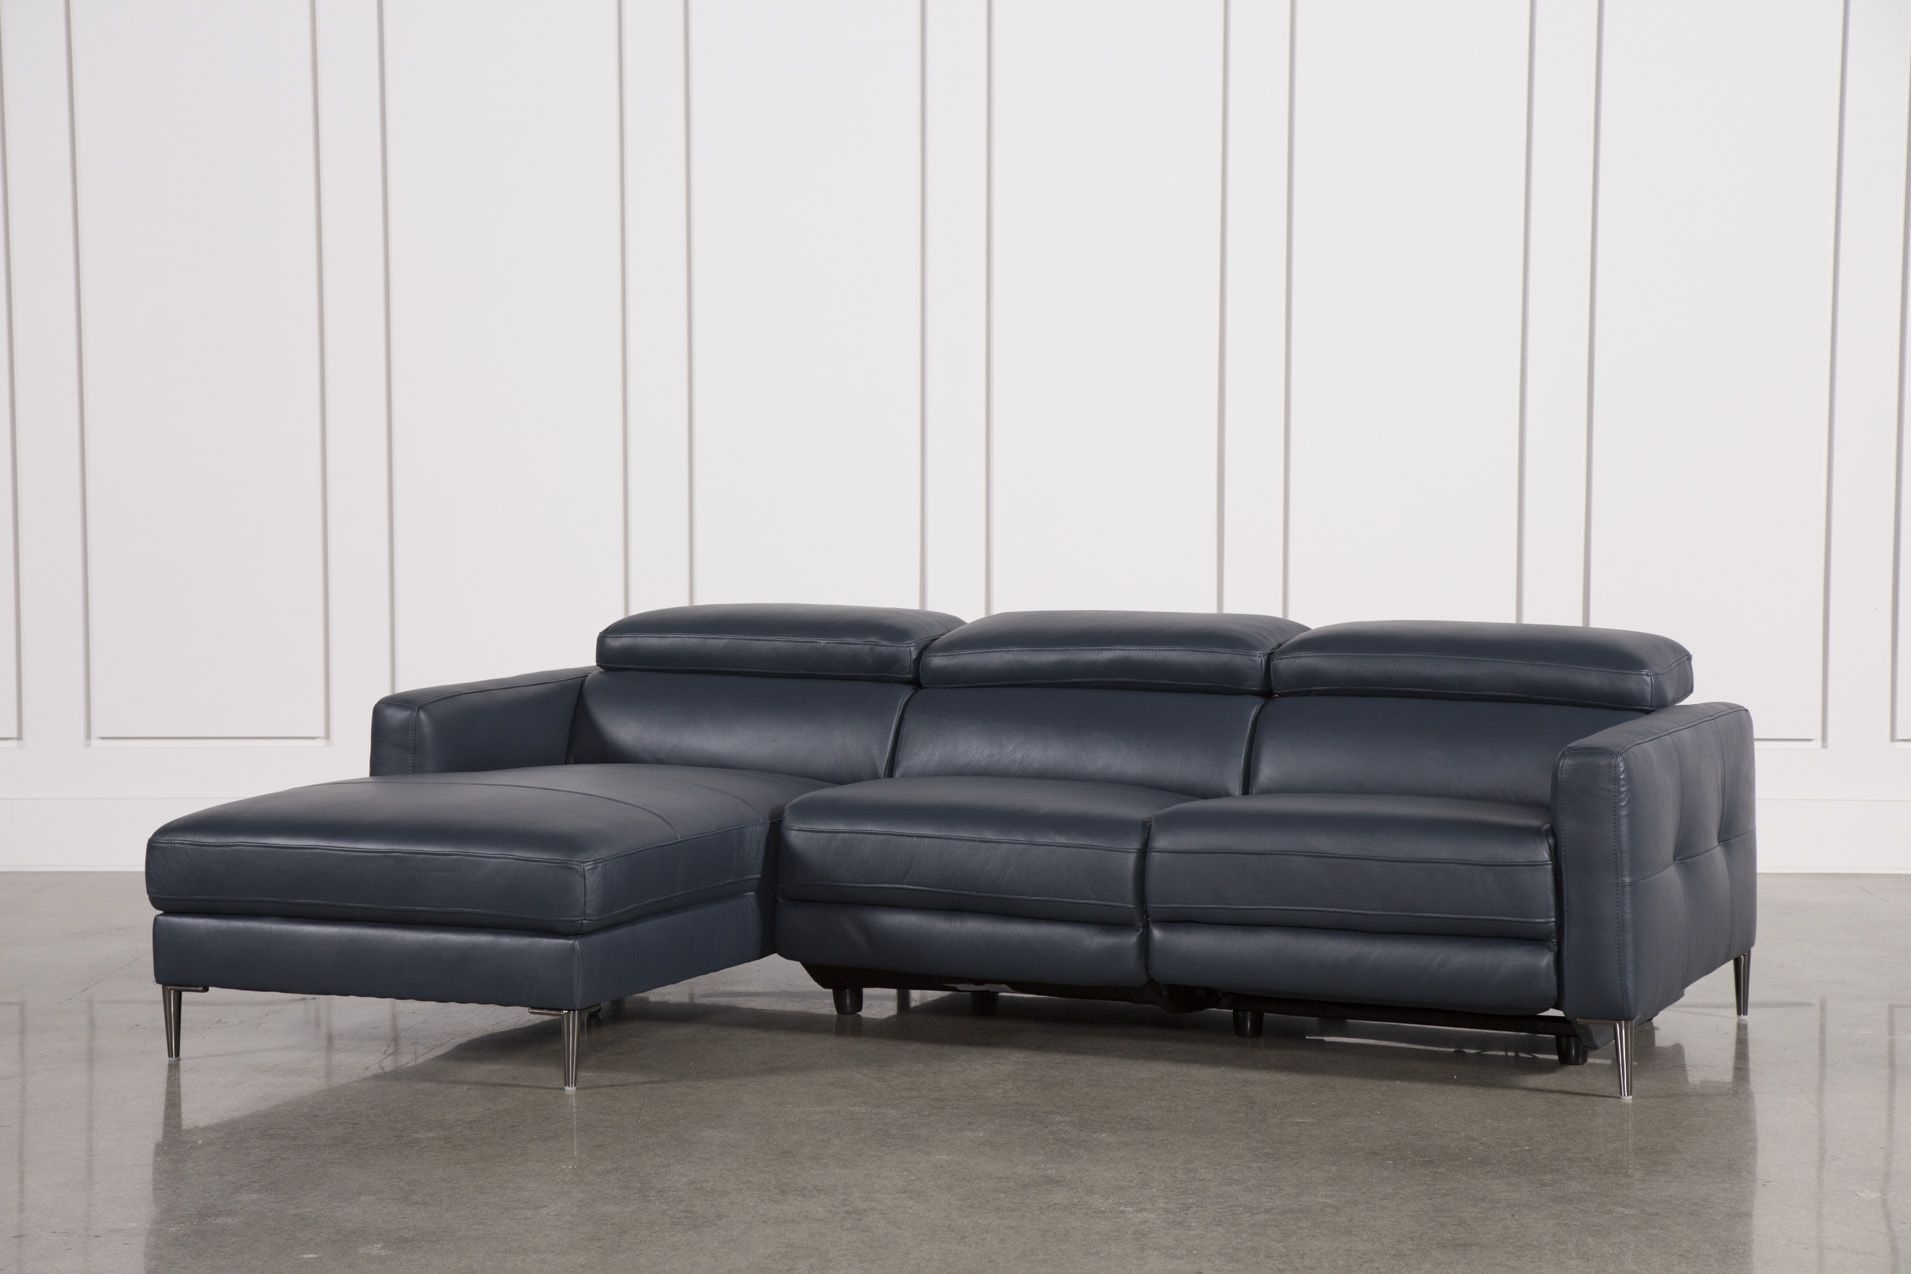 Tara Blue 2 Piece Left Facing Chaise Sofa | Products | Pinterest With Regard To Tenny Dark Grey 2 Piece Left Facing Chaise Sectionals With 2 Headrest (Image 22 of 25)